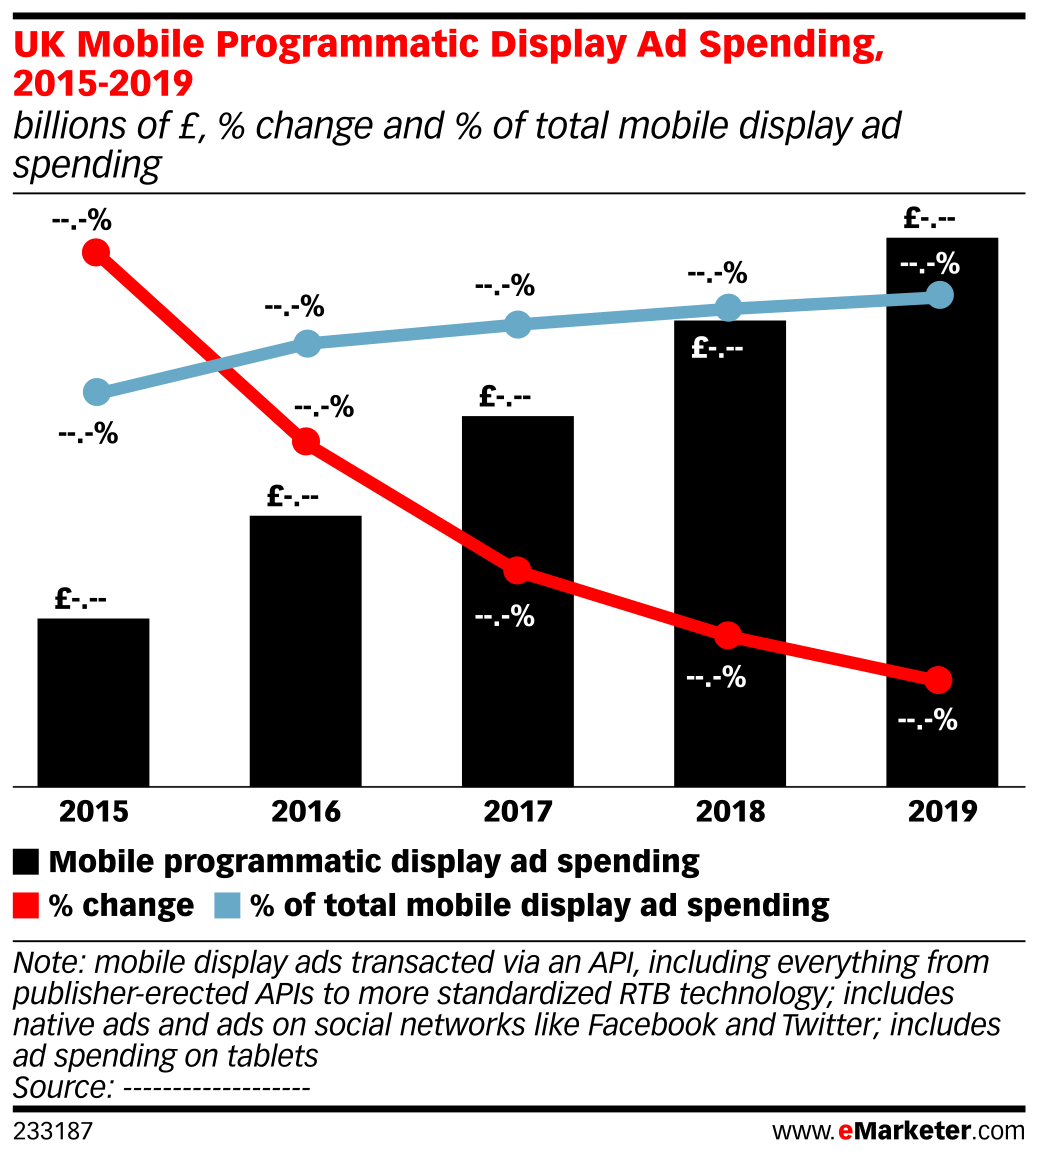 UK Mobile Programmatic Display Ad Spending, 2015-2019 (billions of £, % change and % of total mobile display ad spending)